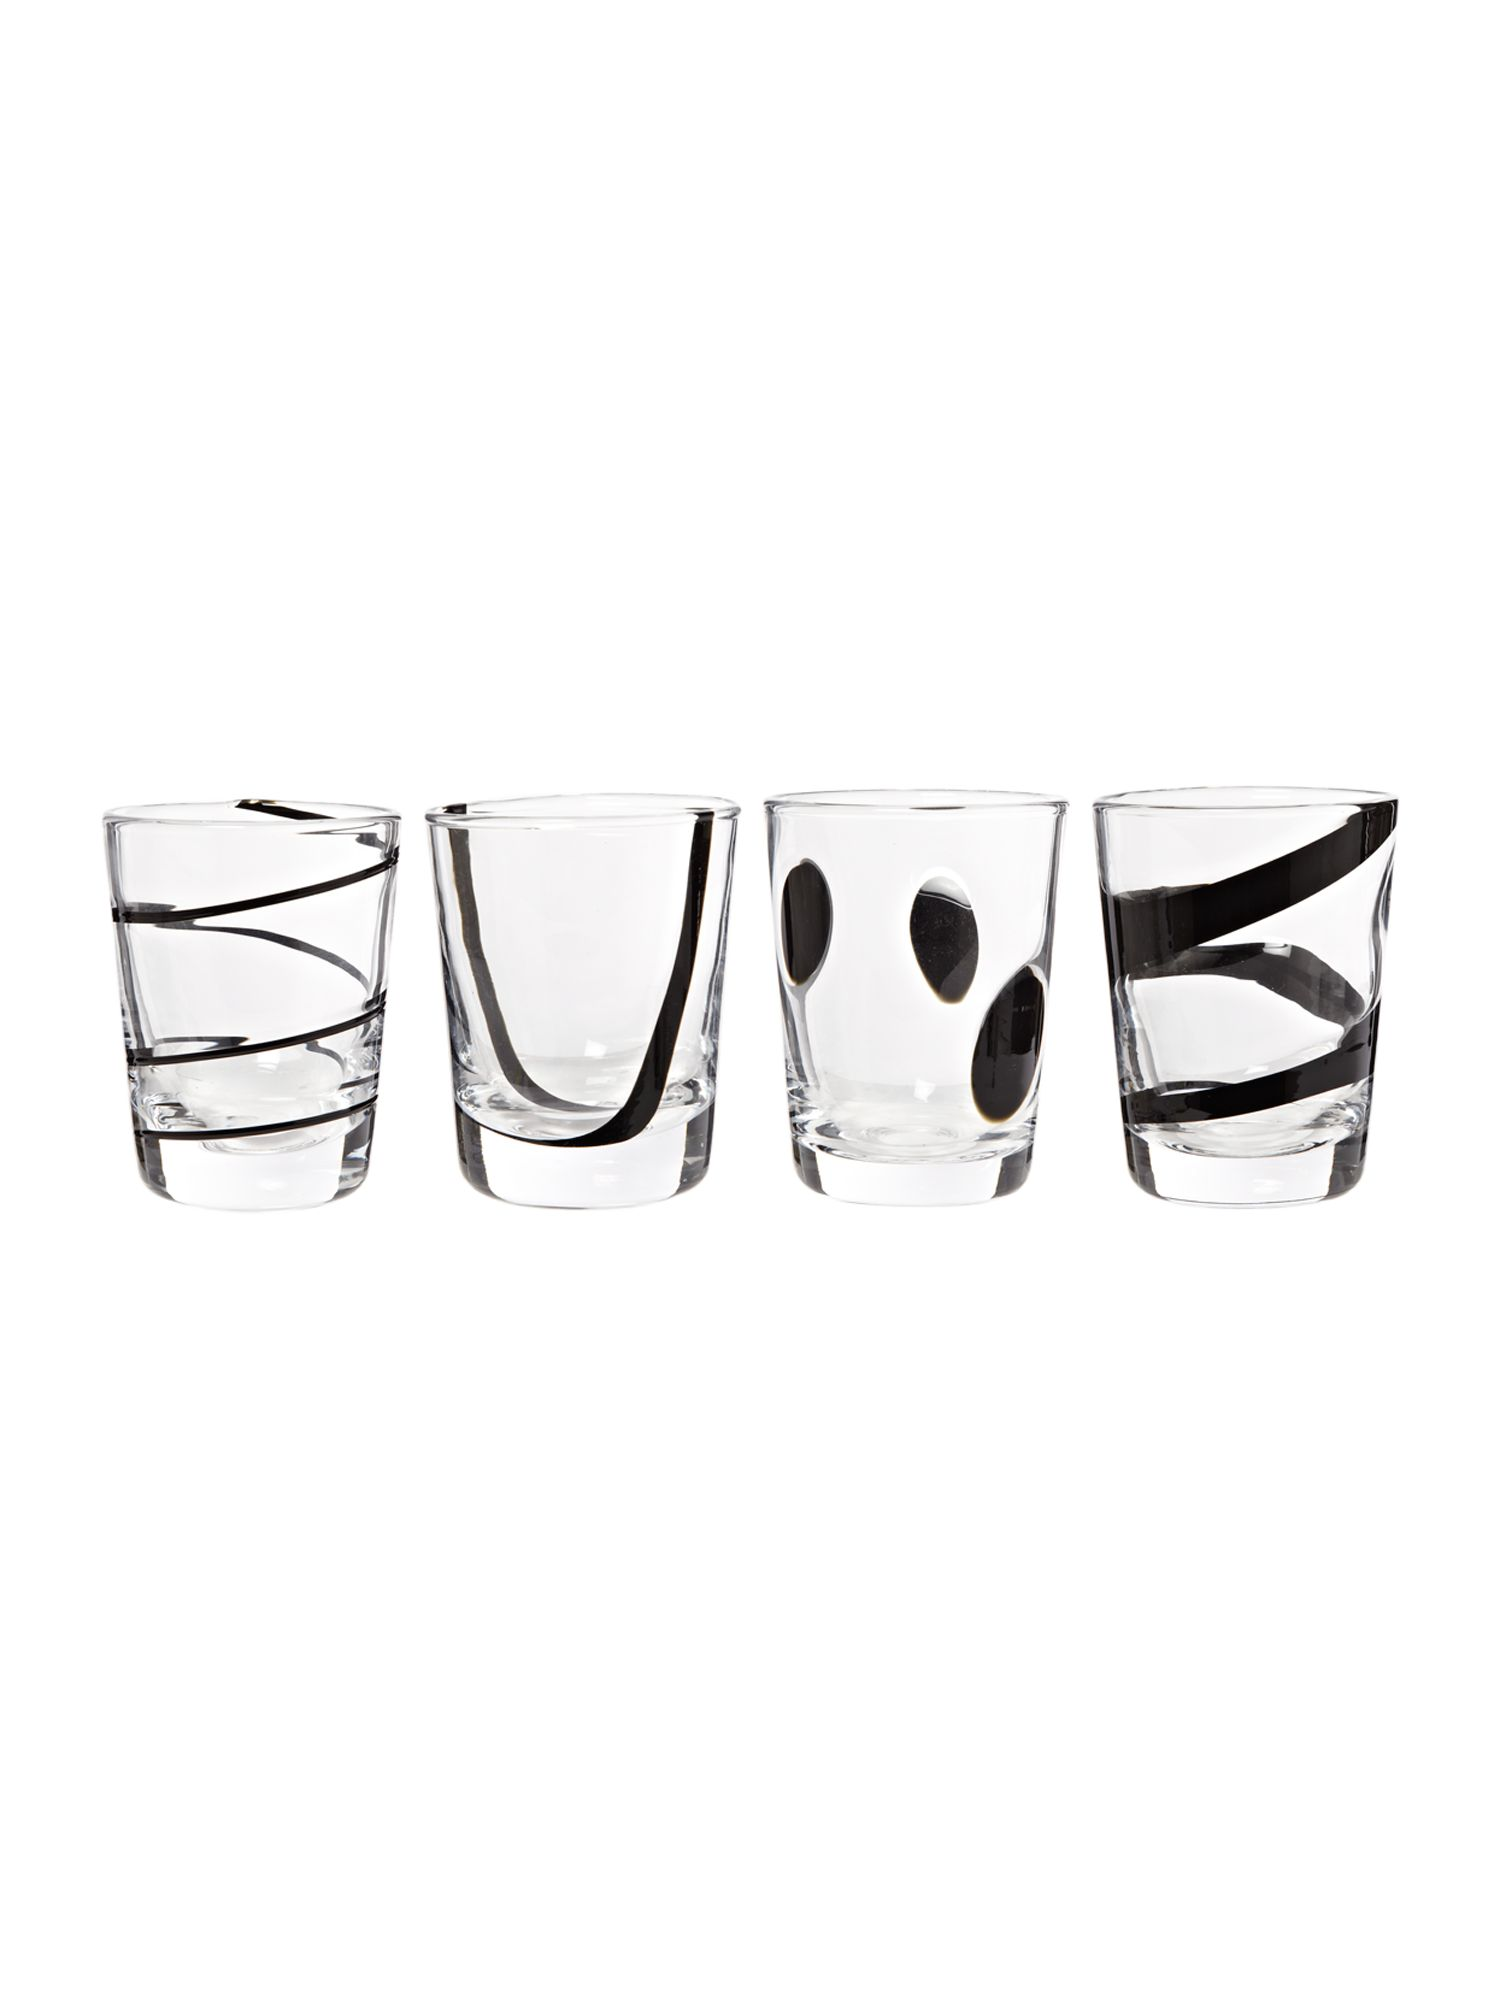 Jazz tumblers set of 4